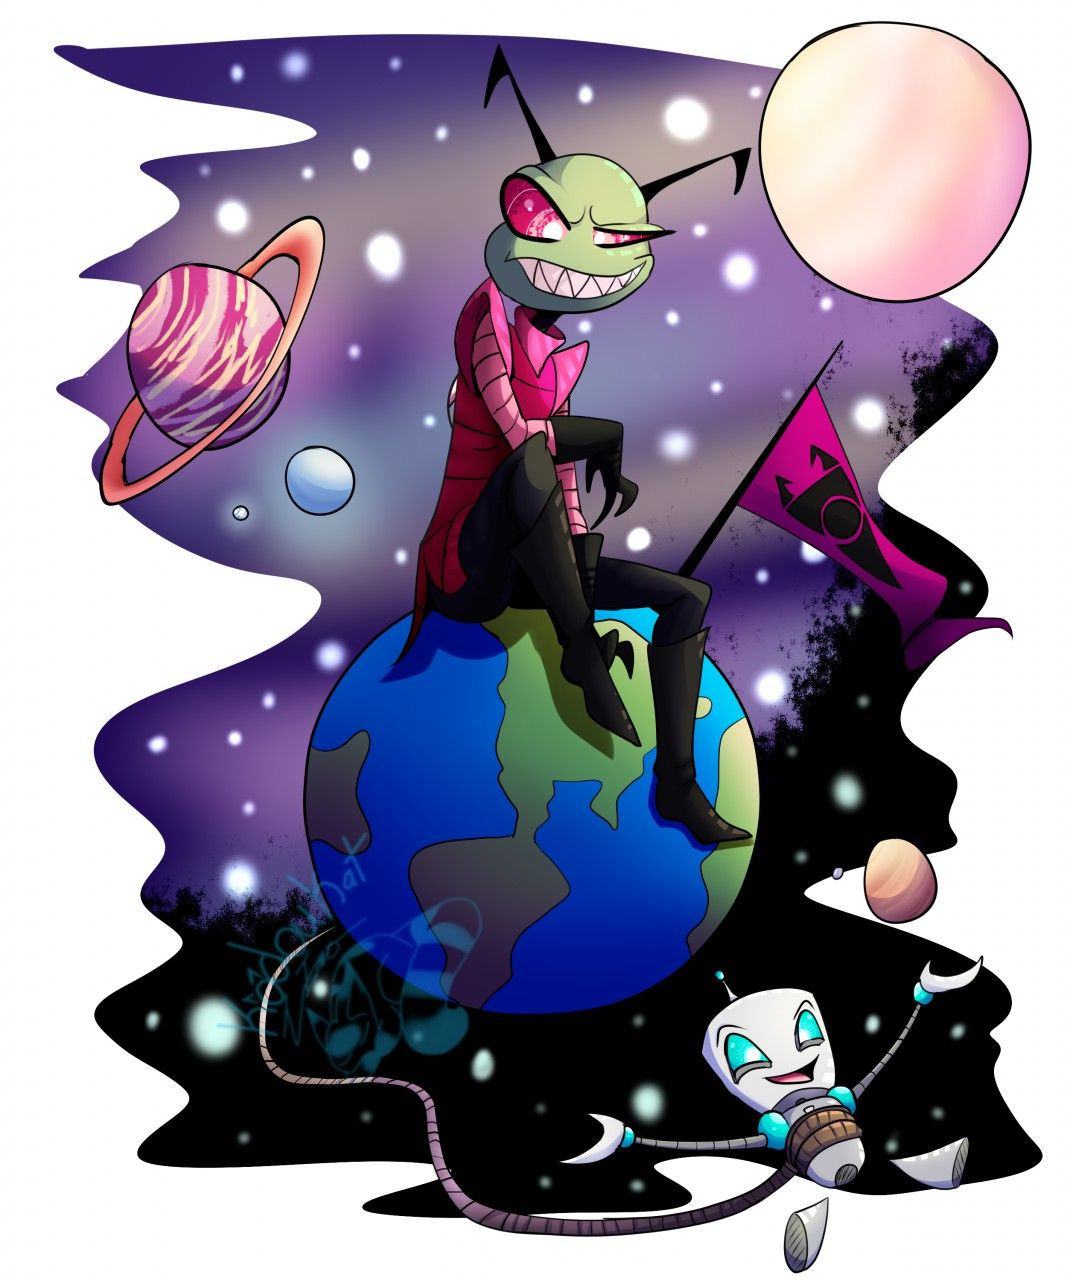 Image by Leah Lytle on Invader zim Anime, Character